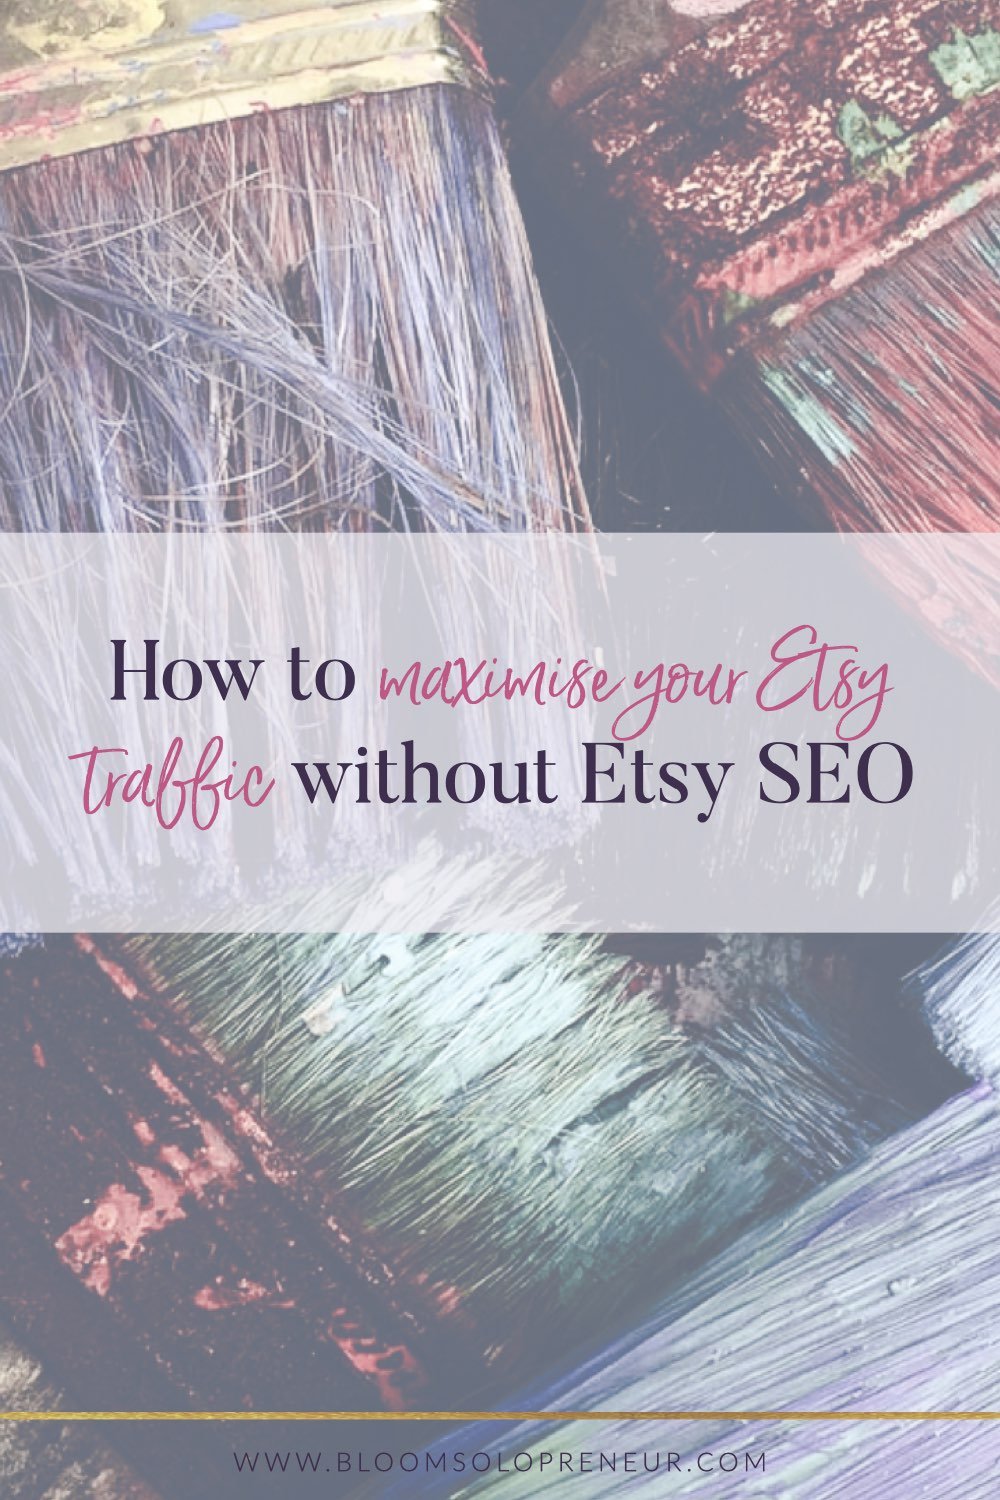 Etsy SEO is only one way for you to drive traffic to your Etsy shop and listings. Take advantage of the many ways you can promote your shop to increase your traffic. If you are anything like me you have been indoctrinated with getting your Etsy search engine optimization right or no one will find your products and you won't make any sales. #handmadebusiness #craftbusiness #creativebusiness #bloomsolopreneur